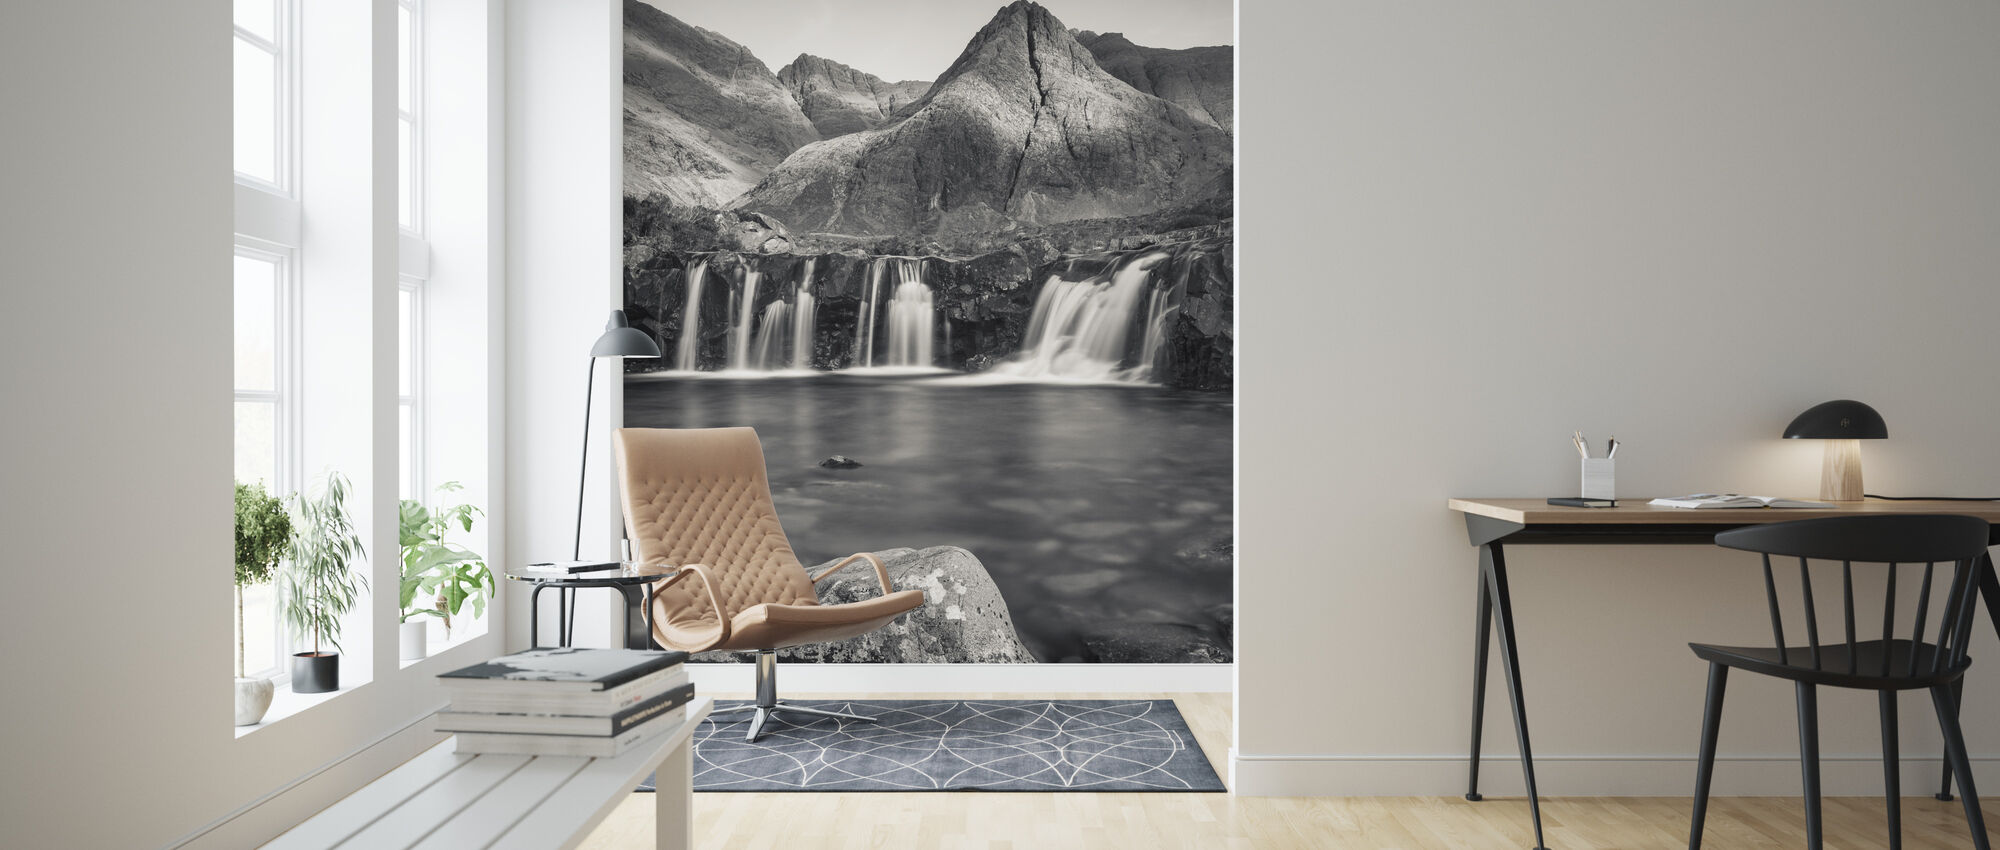 Fairy Pools, Isle of Skye - Scotland - Wallpaper - Living Room